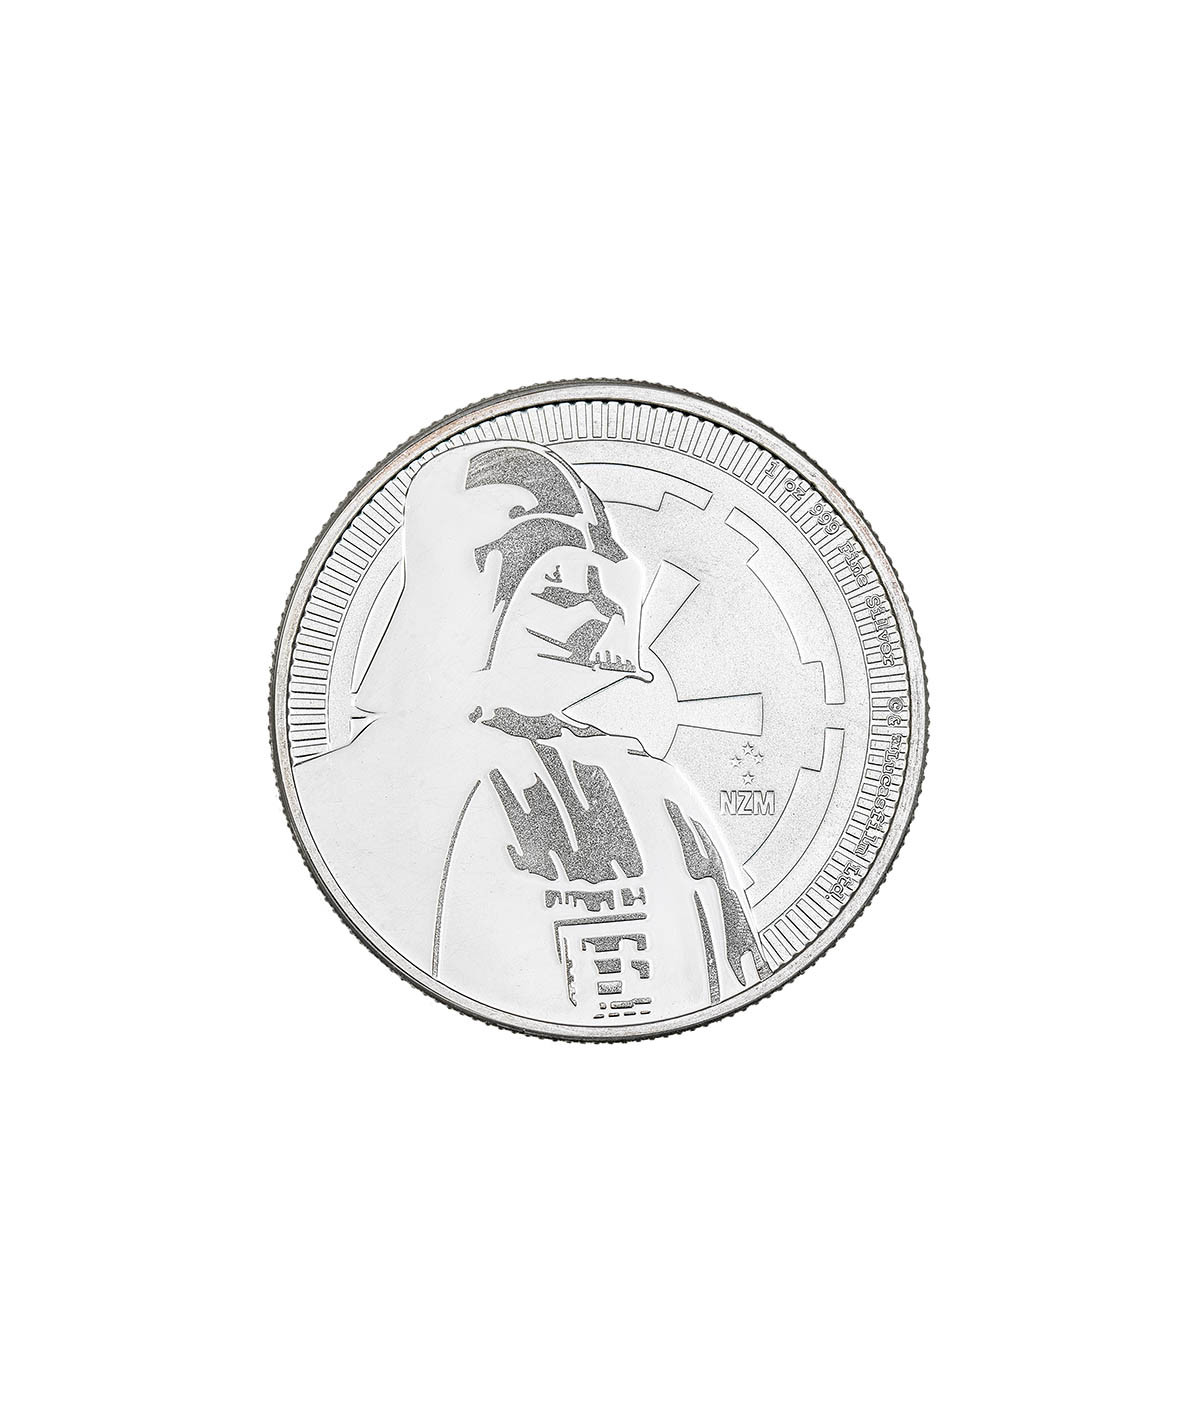 1oz Silver Coin Darth Vader from 2017 - Star Wars Serie